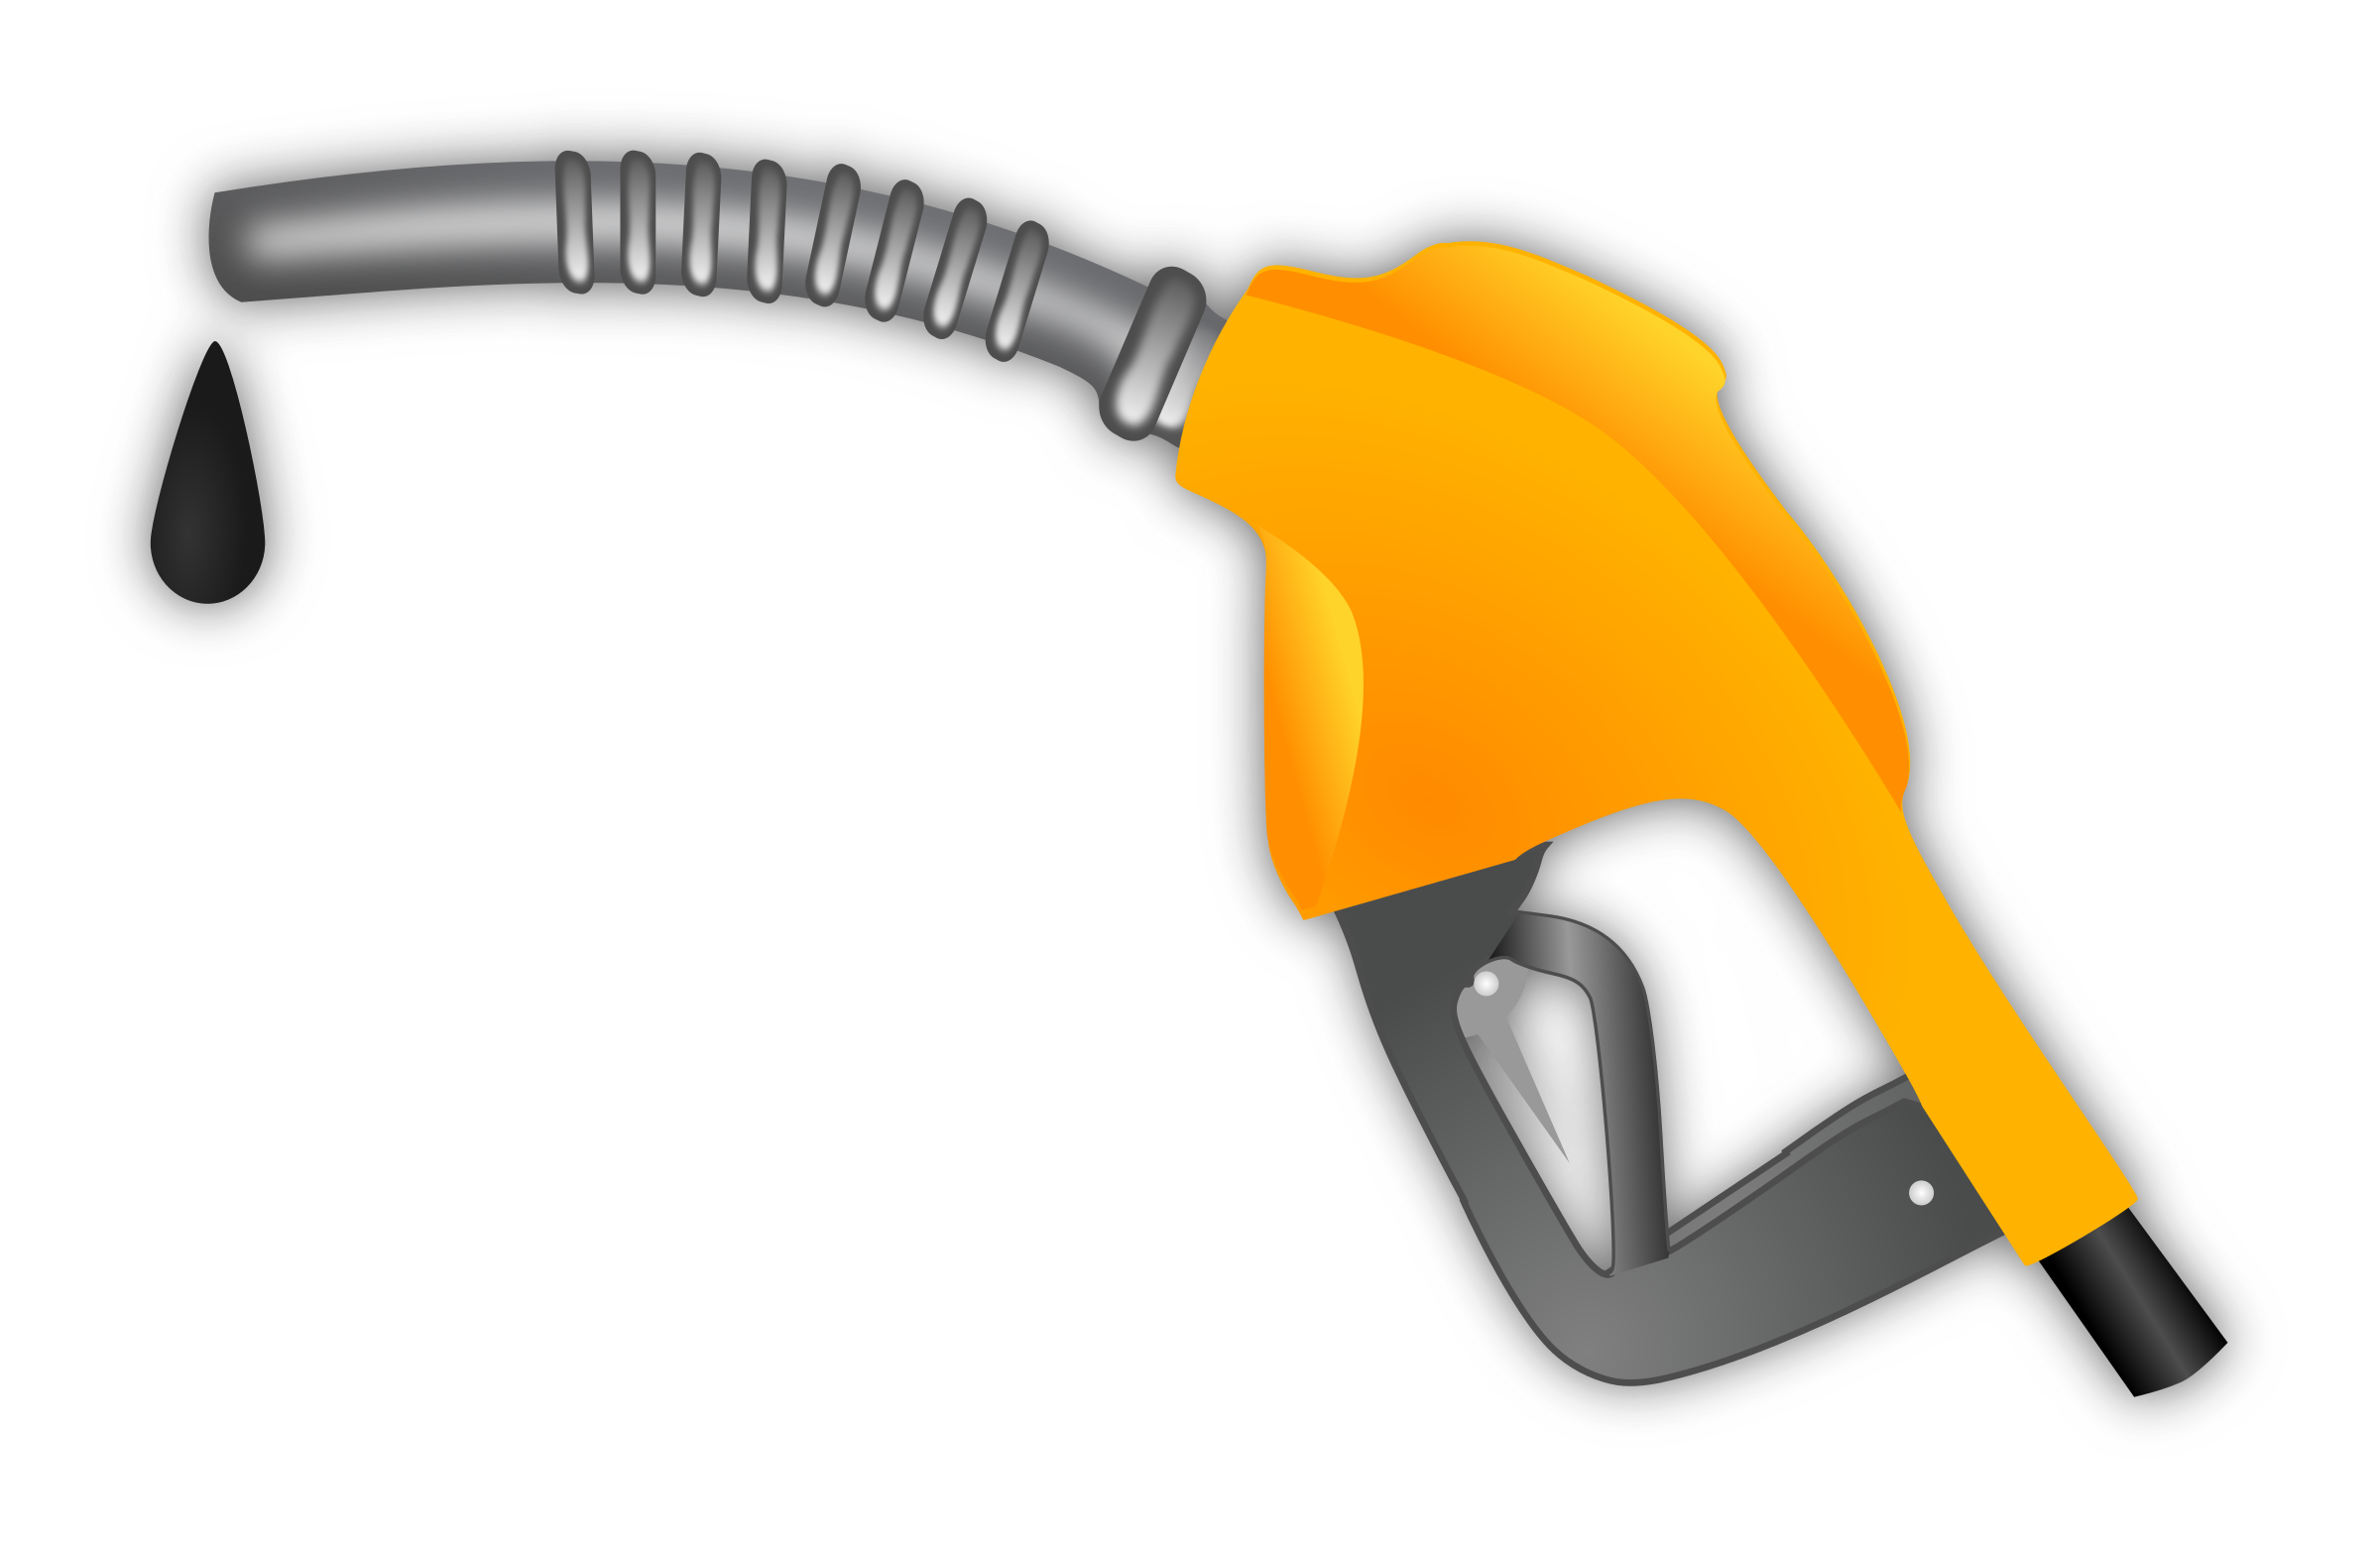 BIG IMAGE (PNG): openclipart.org/detail/172014/gas-pump-nozzle-by-gnokii-172014